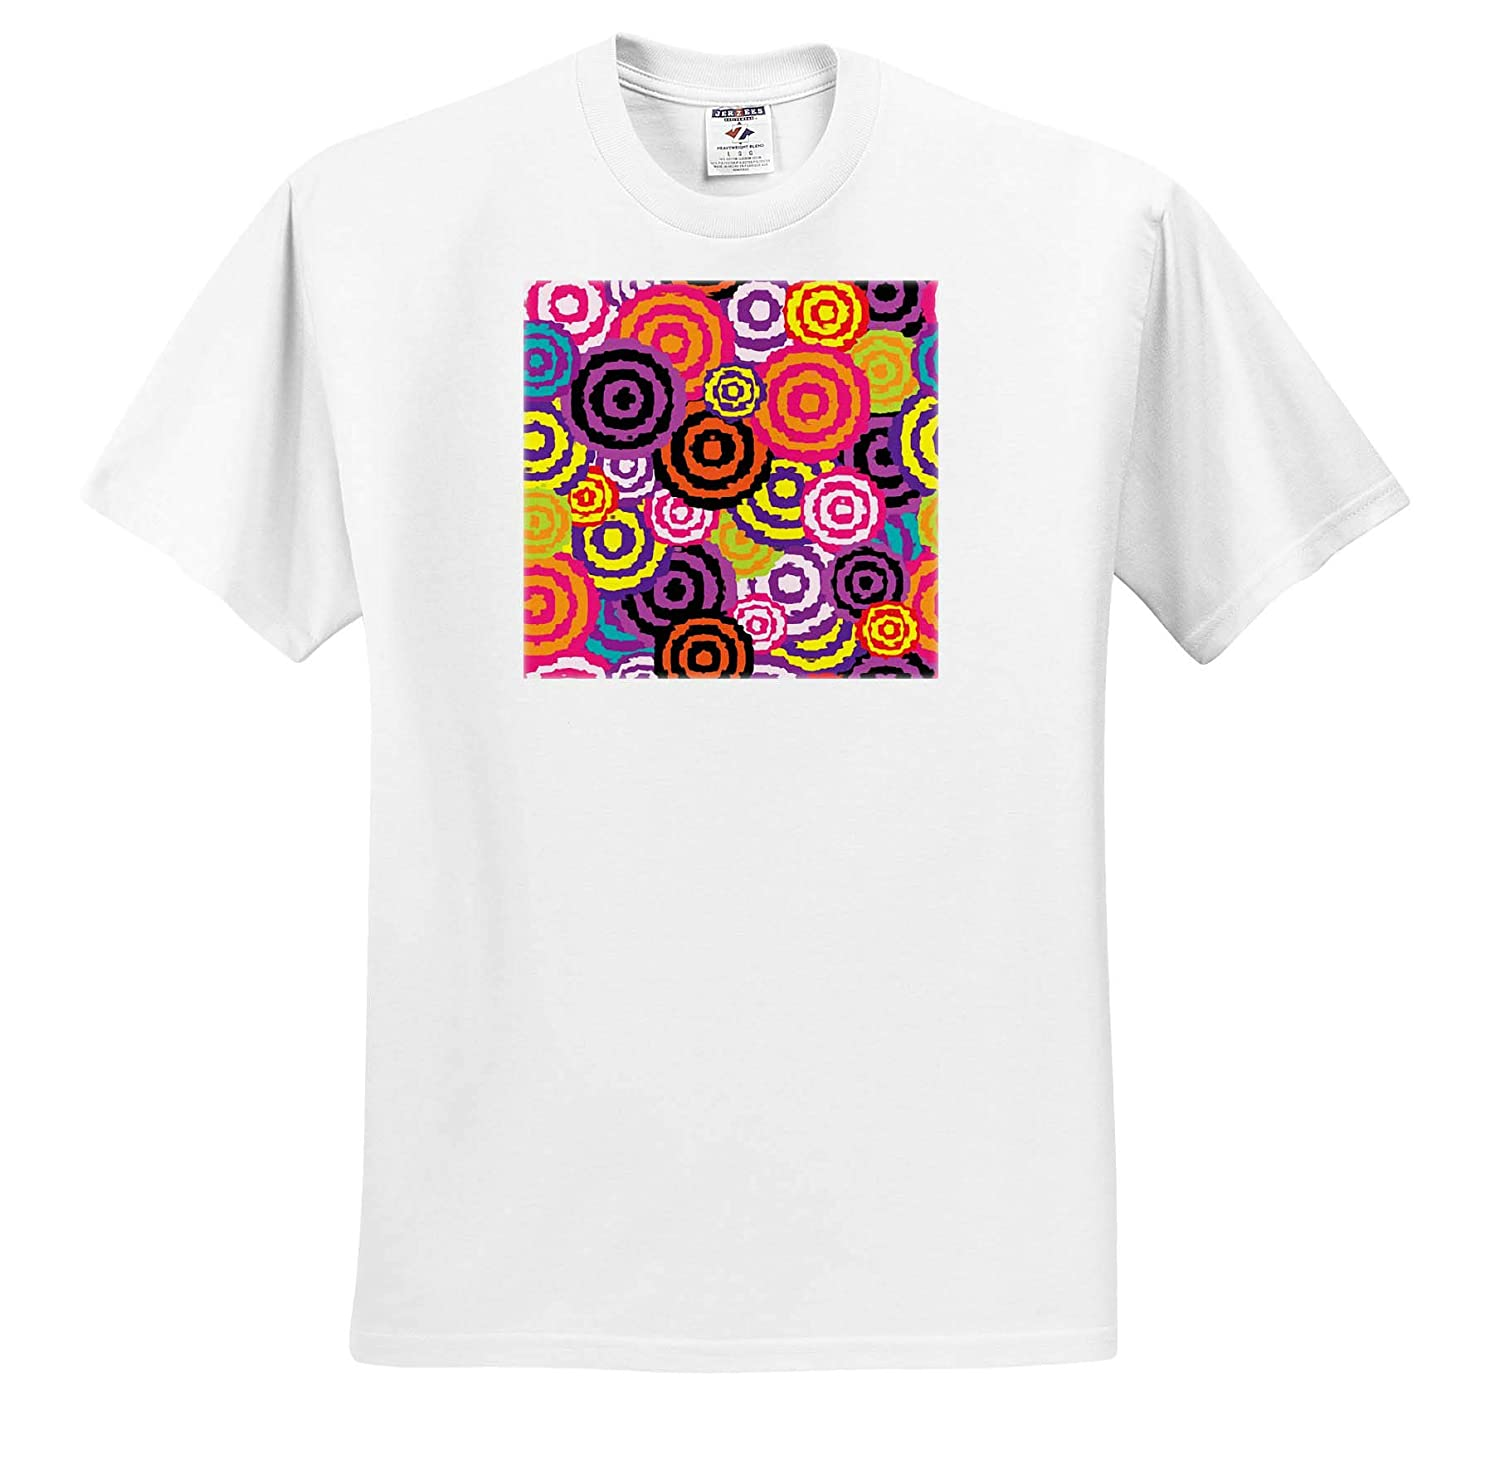 Image of Popping Circles of Purple Orange Yellow Pattern 3dRose Lens Art by Florene T-Shirts Three D Abstract Design